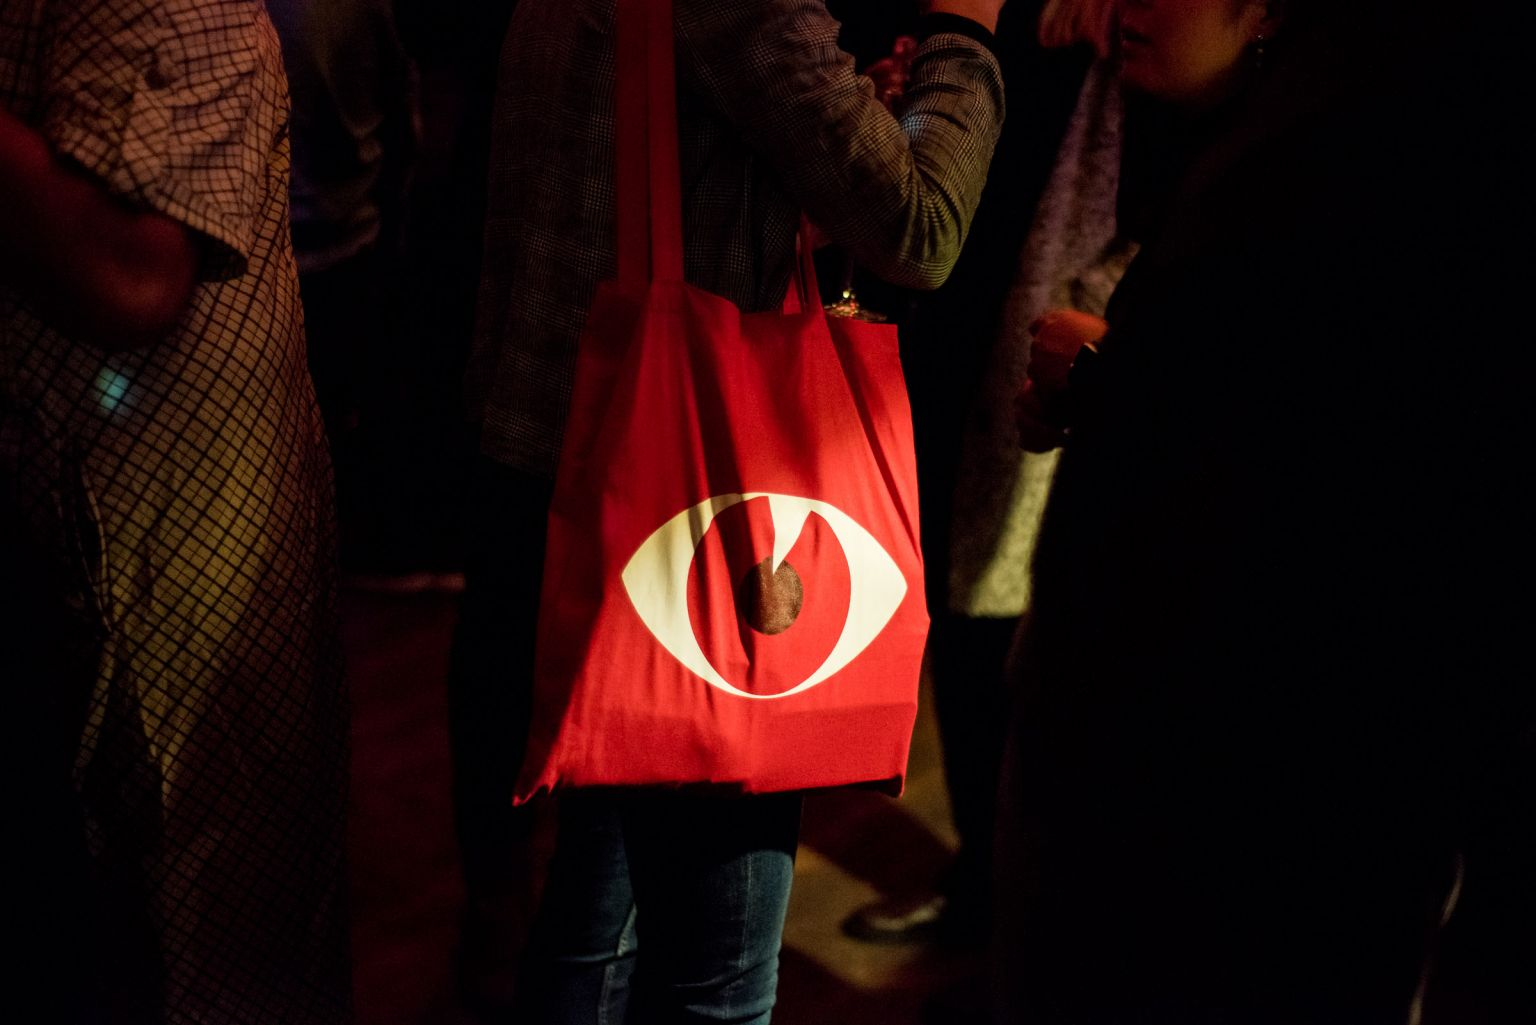 In a dark surrounding, one spotlight lights up the red dok bag with the festival motive, the eye